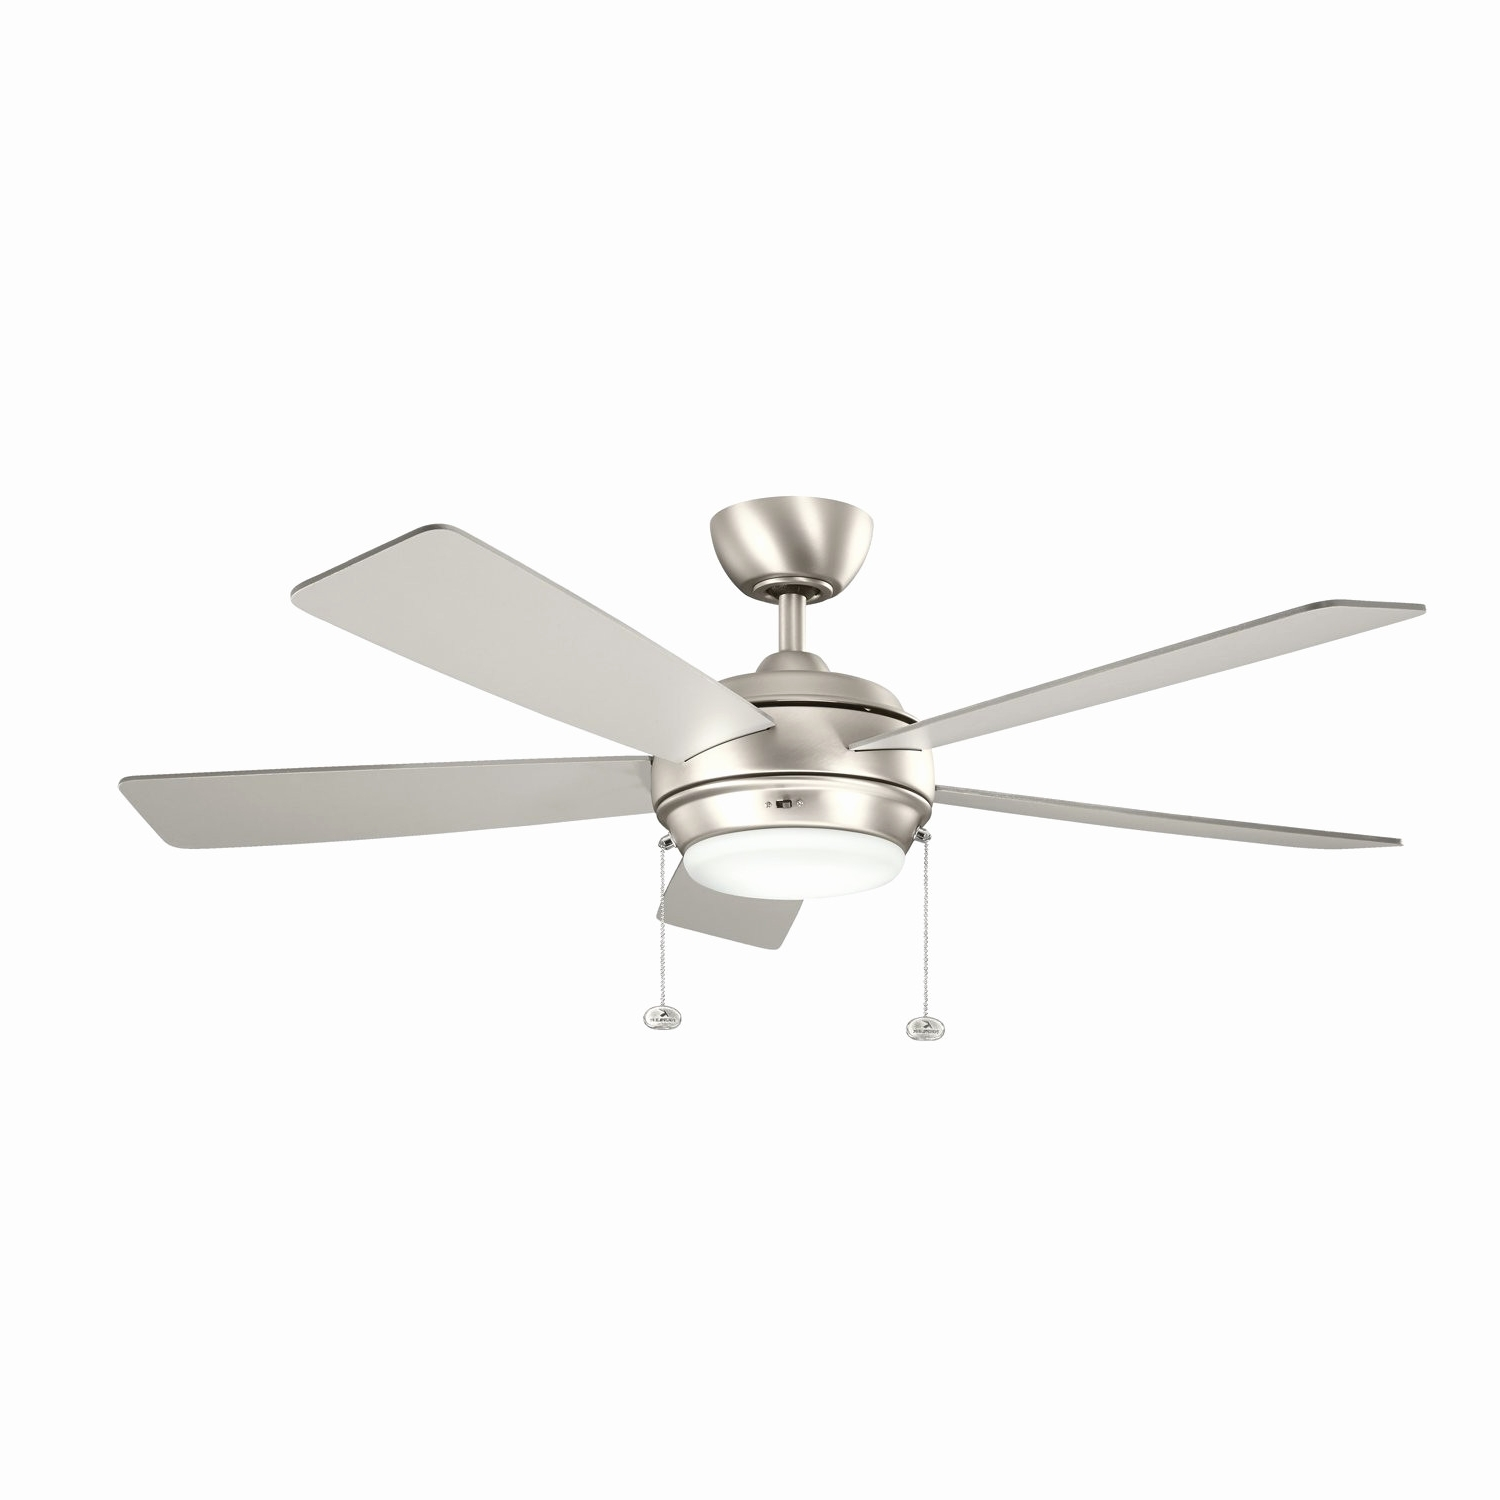 Outdoor Ceiling Fans With Downrod Throughout Most Up To Date White Outdoor Ceiling Fan Beautiful Best Downrod Ceiling Fan 9 S (View 8 of 20)